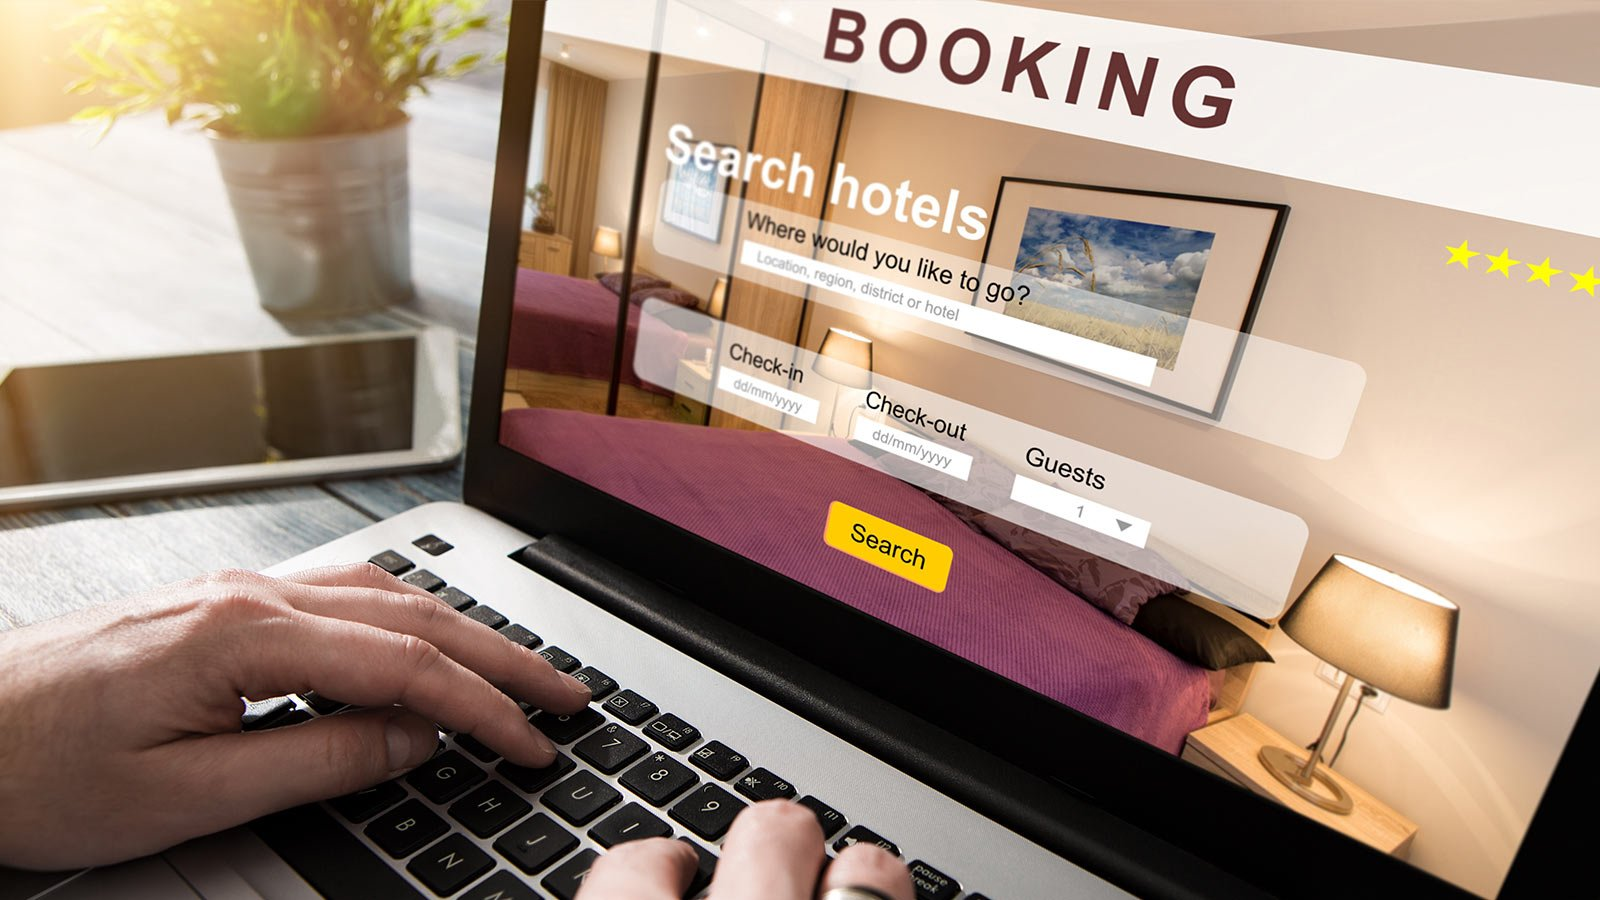 Booking hotel on laptop